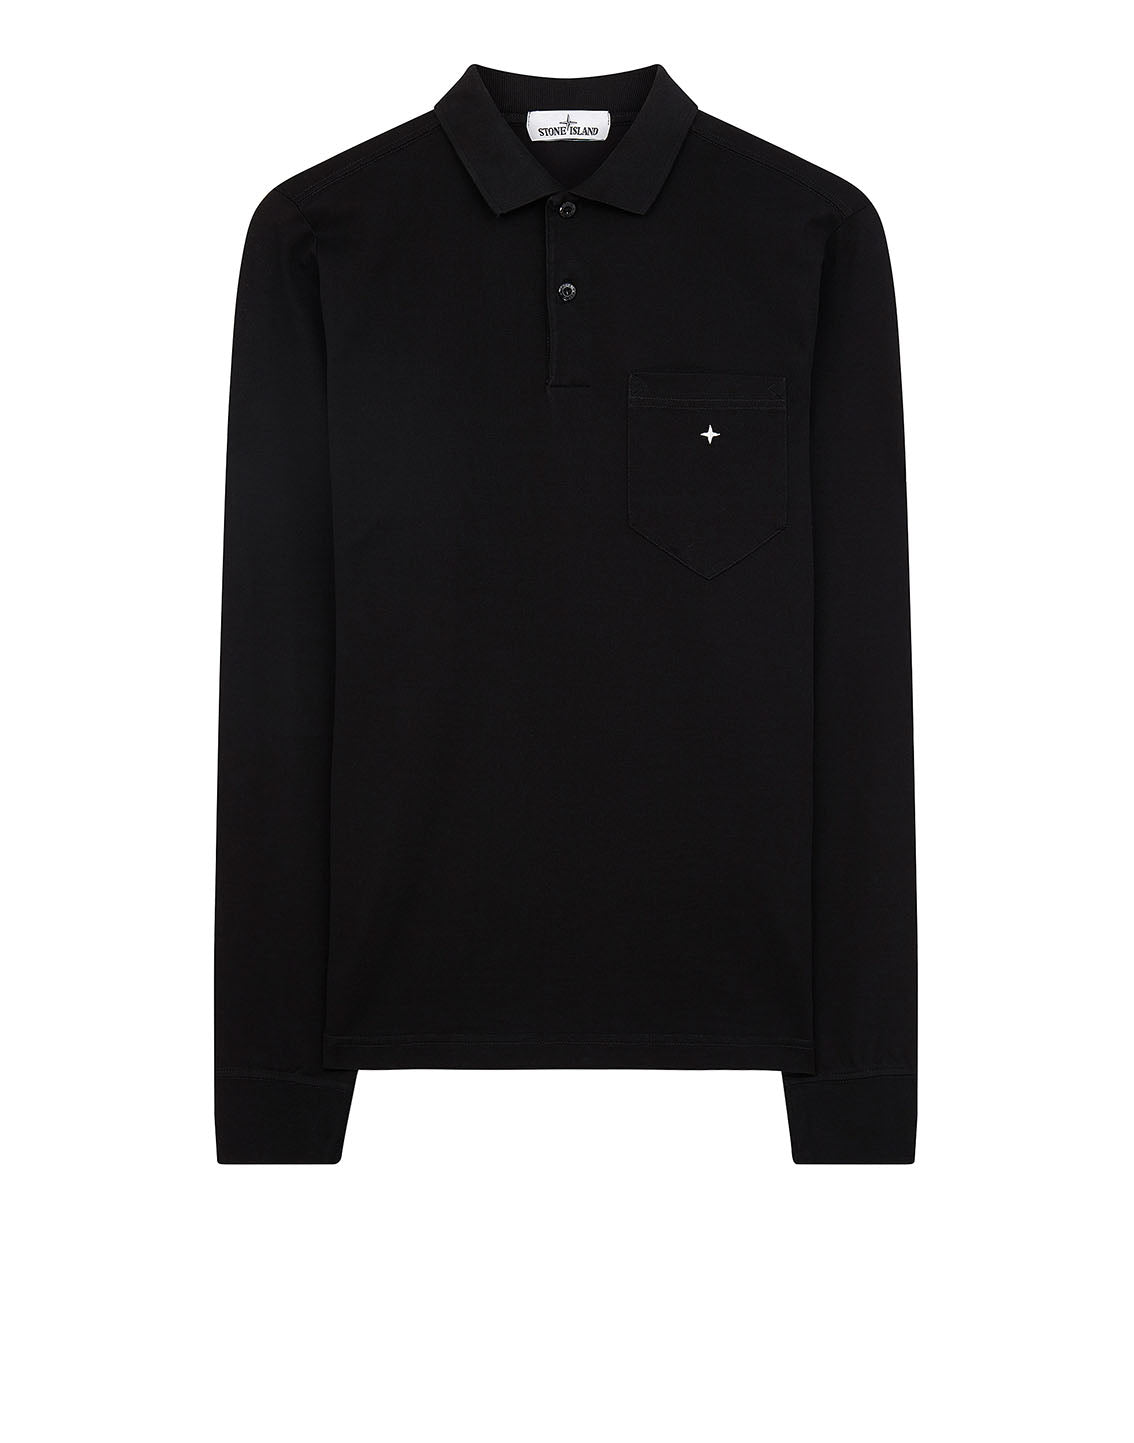 21112 Polo Shirt in Black